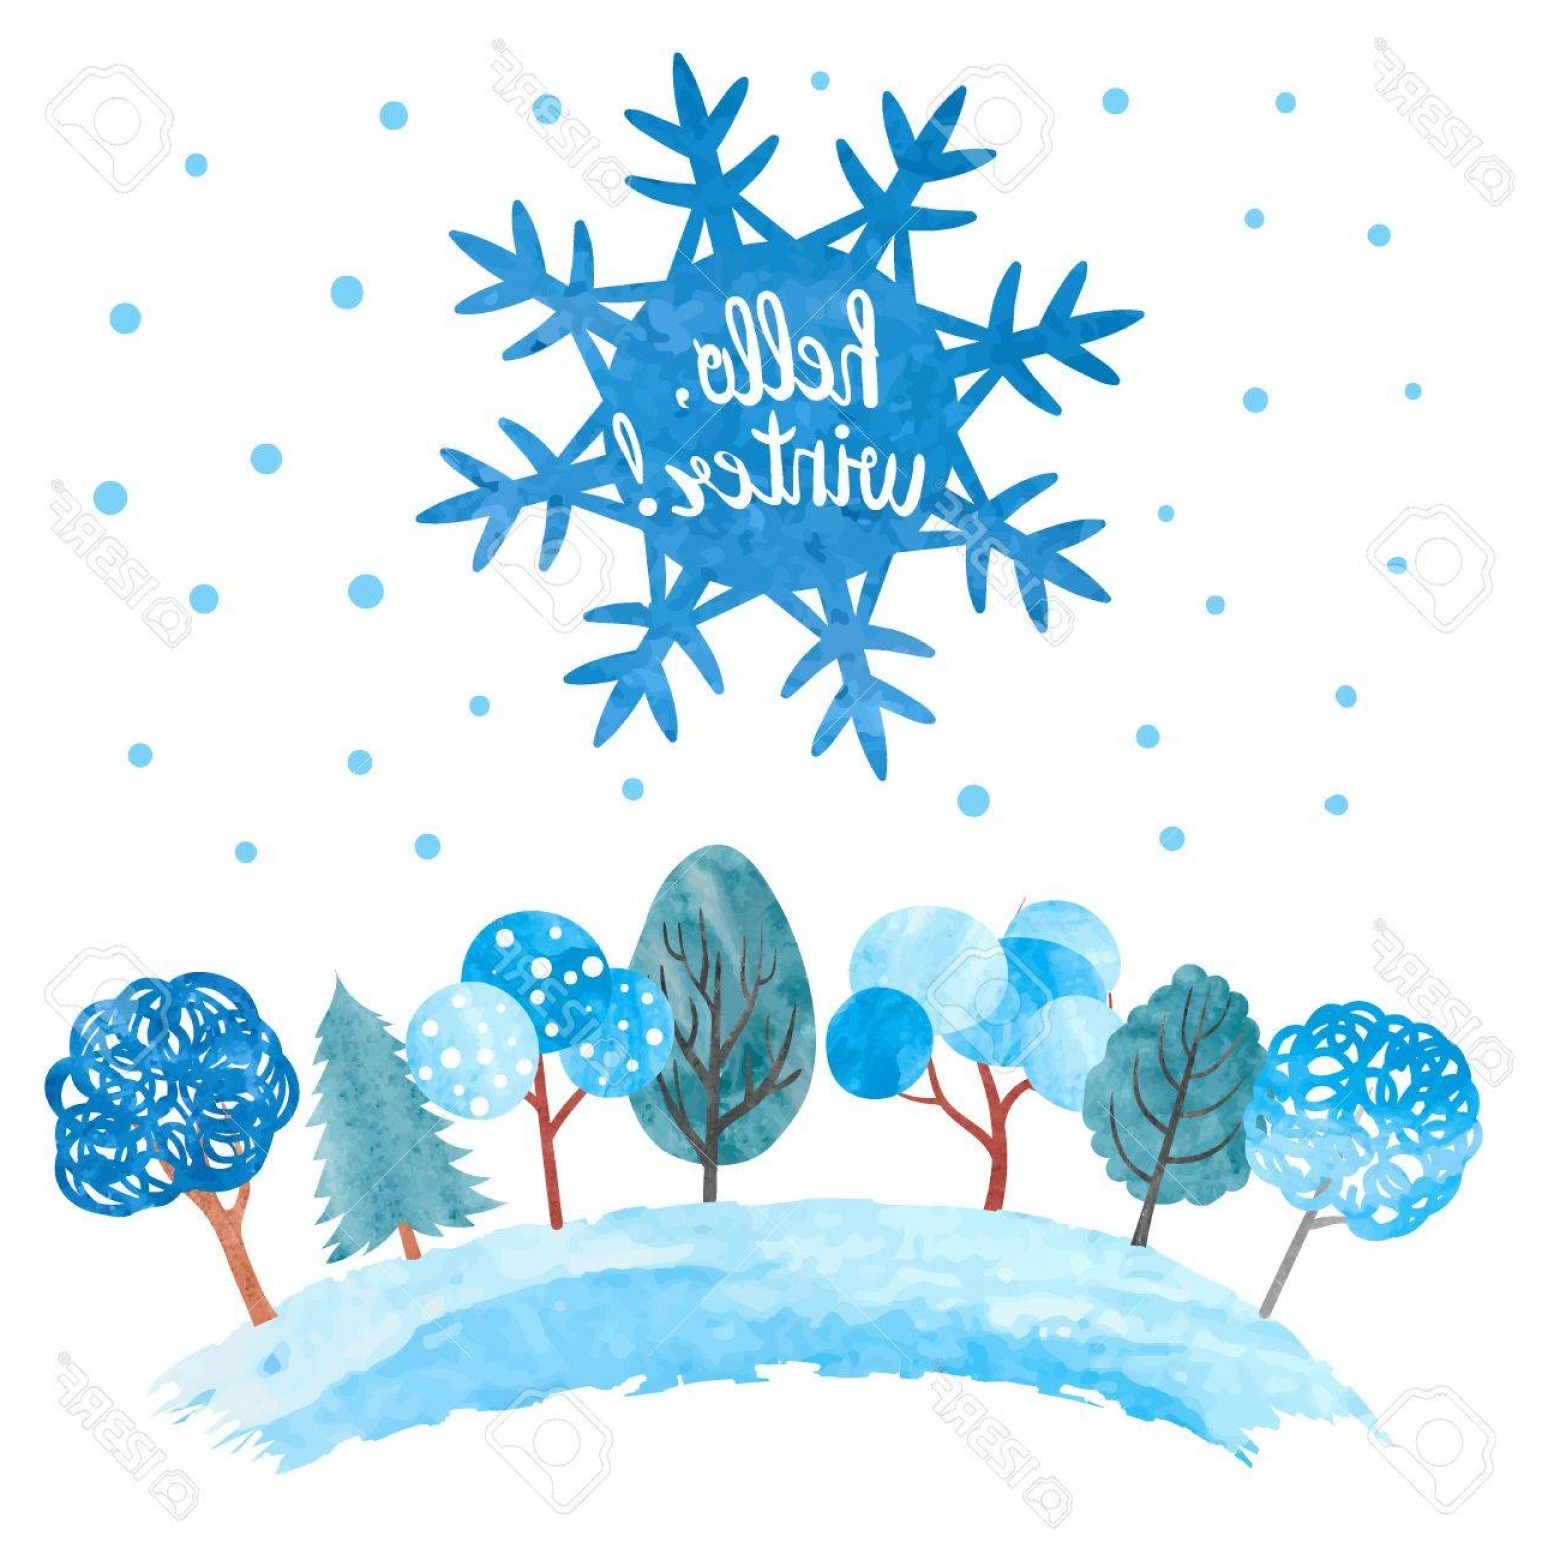 Free Winter Vector: Photostock Vector Hello Winter Vector Illustration Watercolor Snowflake And Trees In Blue Colors Christmas Background